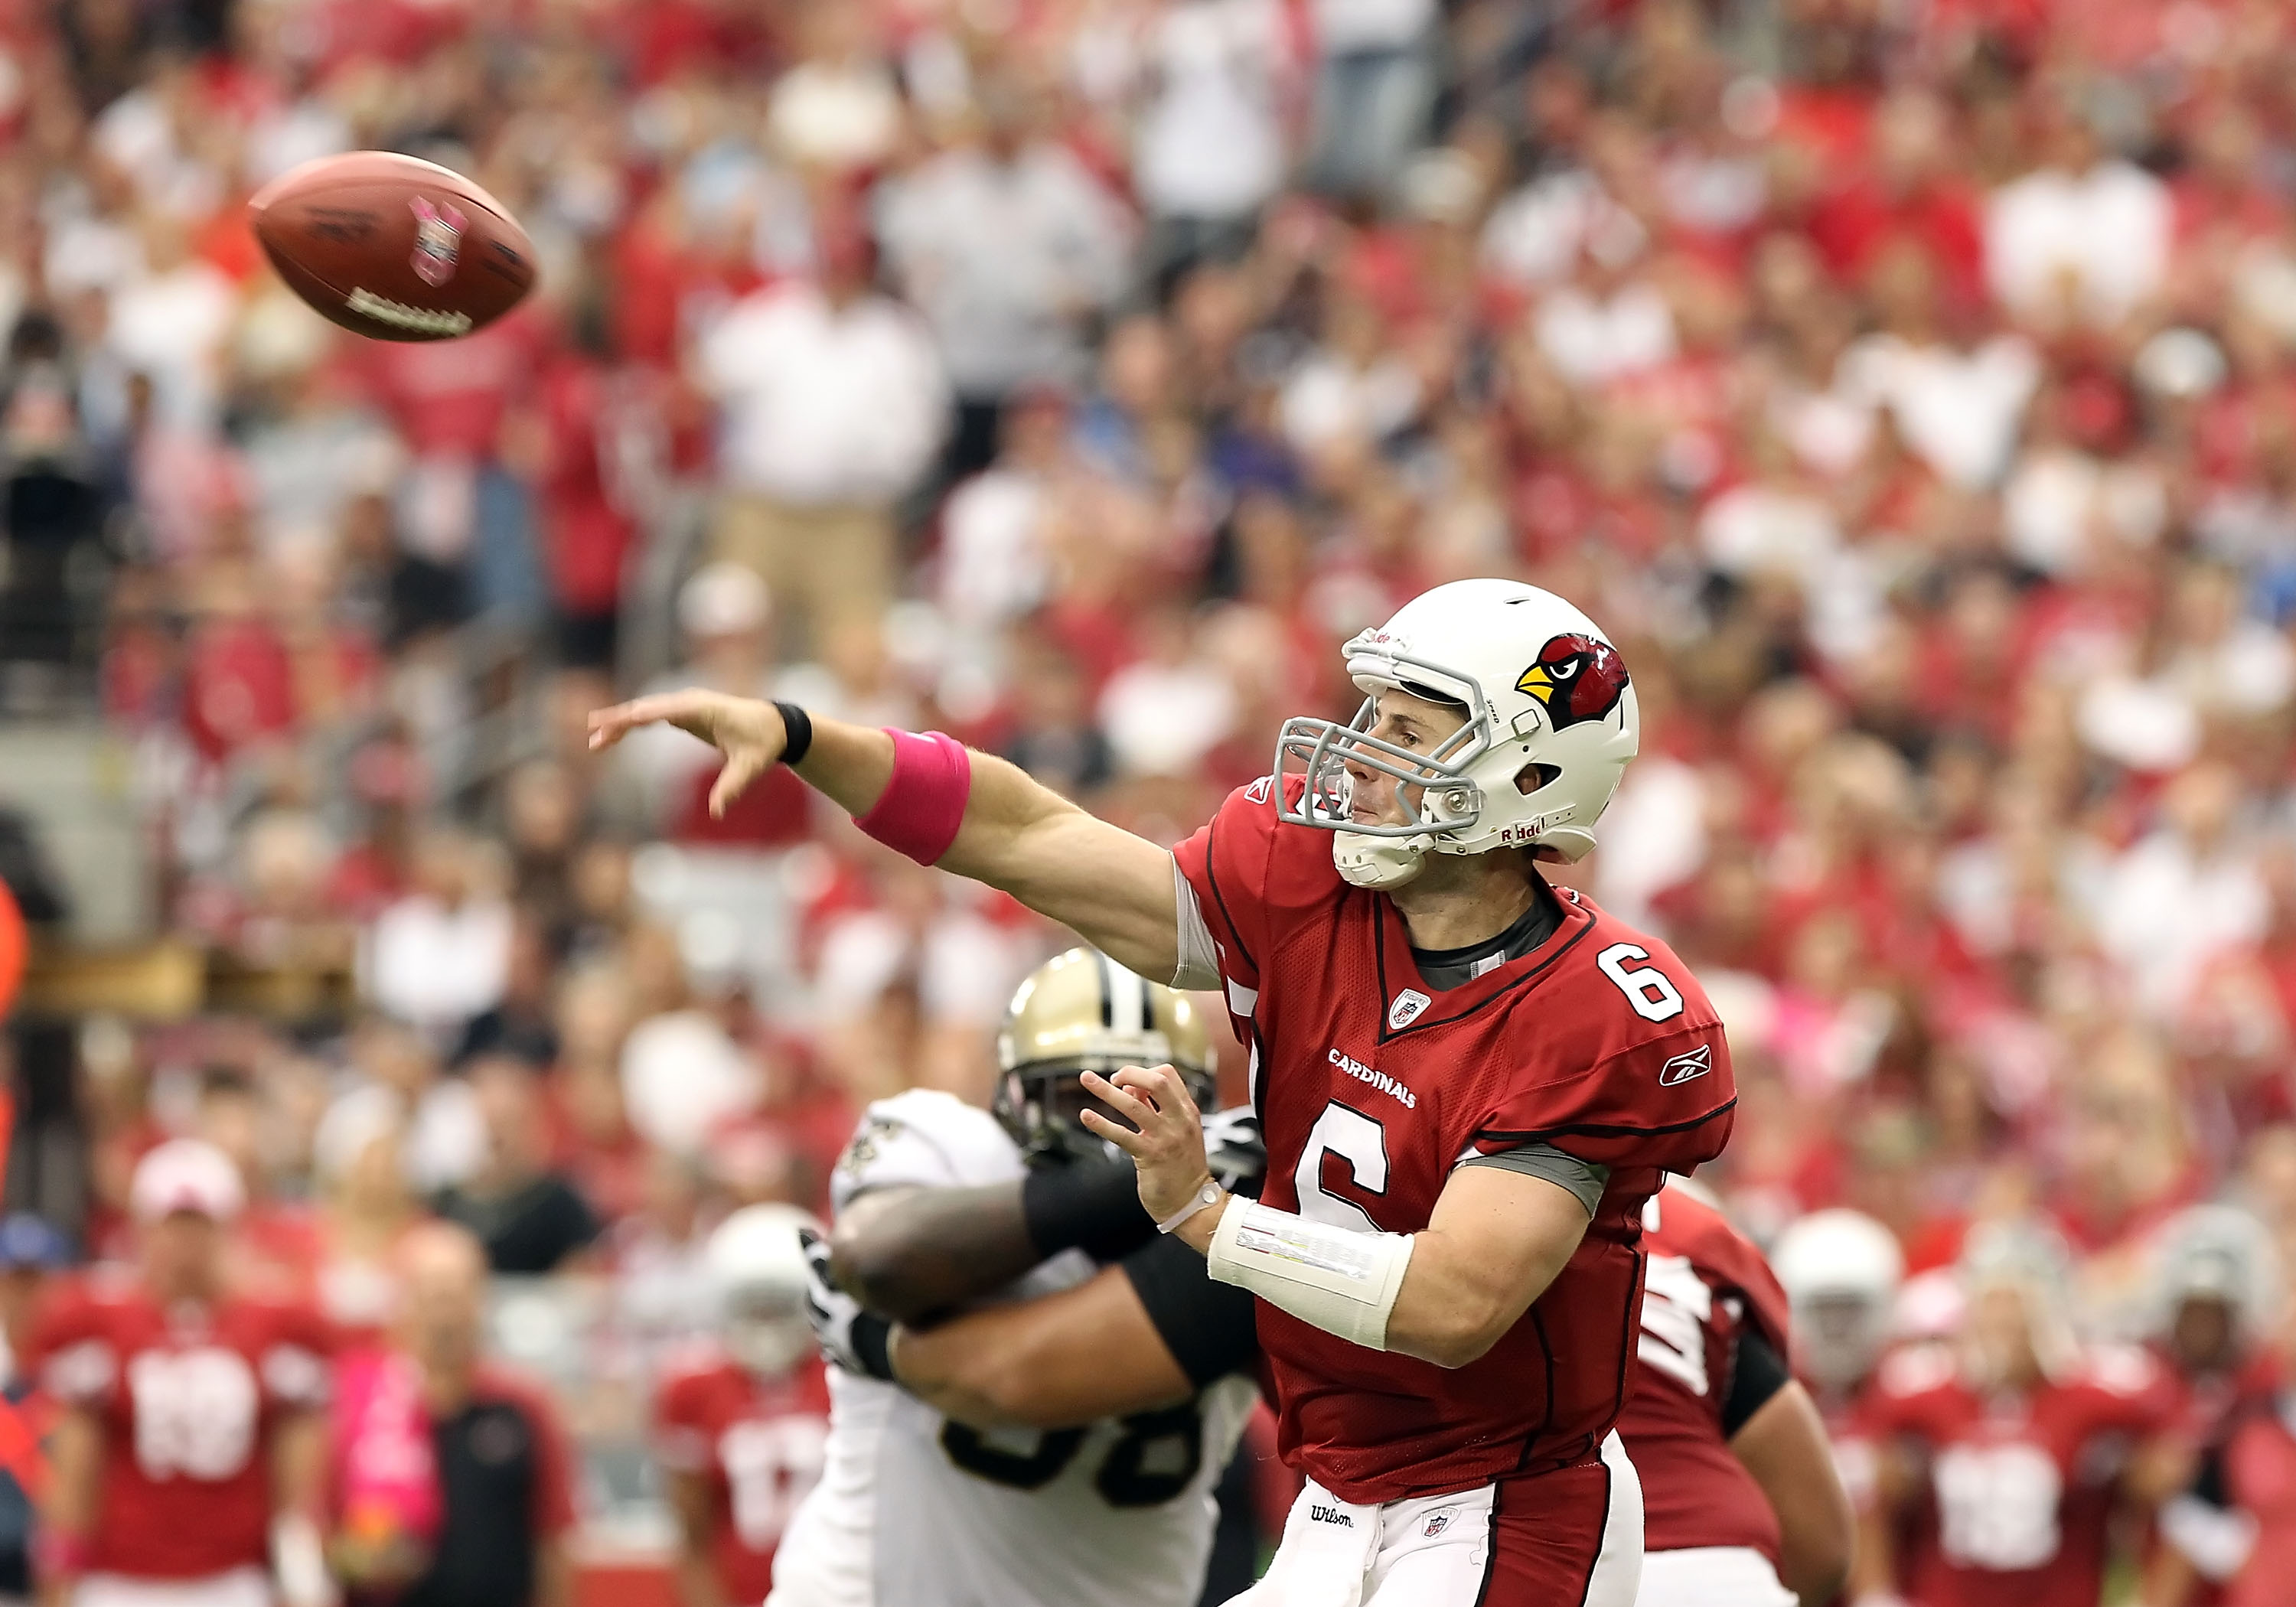 GLENDALE, AZ - OCTOBER 10:  Quarterback Max Hall #6 of the Arizona Cardinals throws a pass during the NFL game against the New Orleans Saints at the University of Phoenix Stadium on October 10, 2010 in Glendale, Arizona.  (Photo by Christian Petersen/Gett